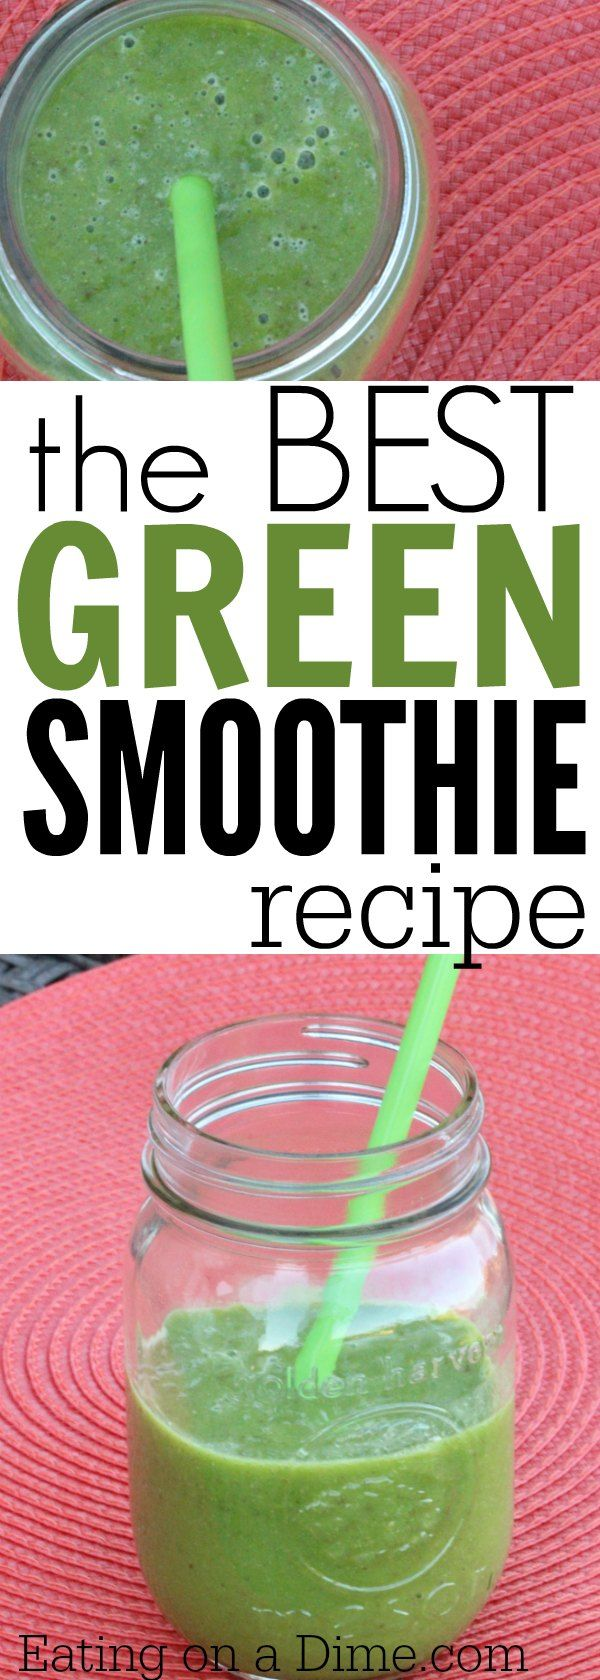 are you wanting to try an easy Spinach smoothie? Make this Spinach Pineapple Smoothie recipe. It is The best Green Smoothie!